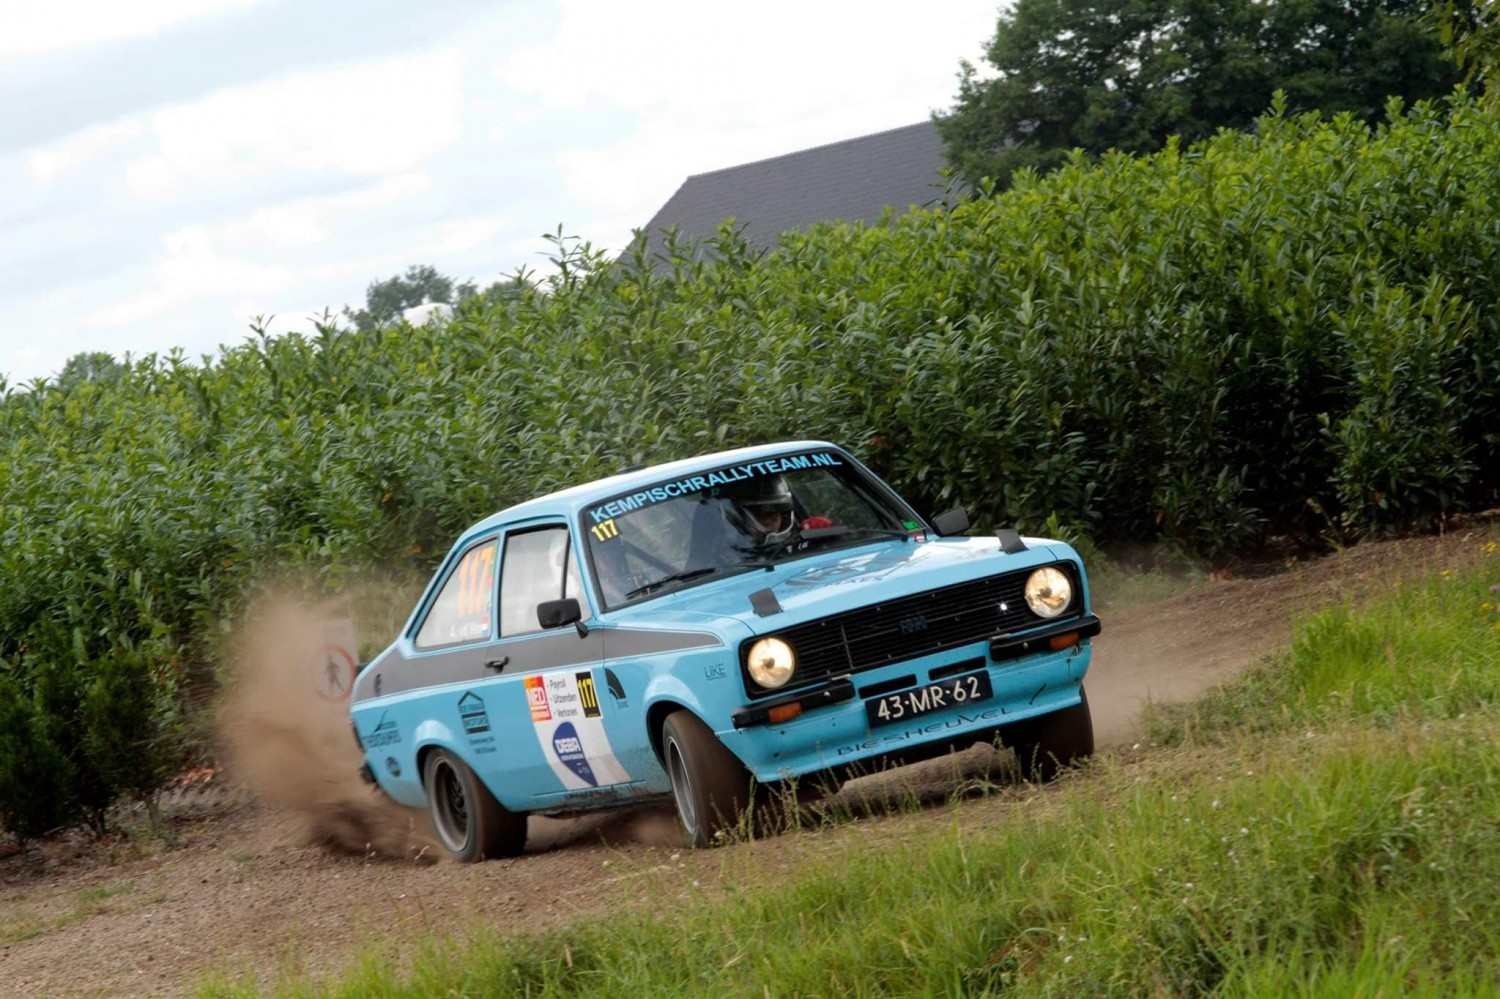 Wedstrijdverslag Michel en Alex in de GTC Rally.